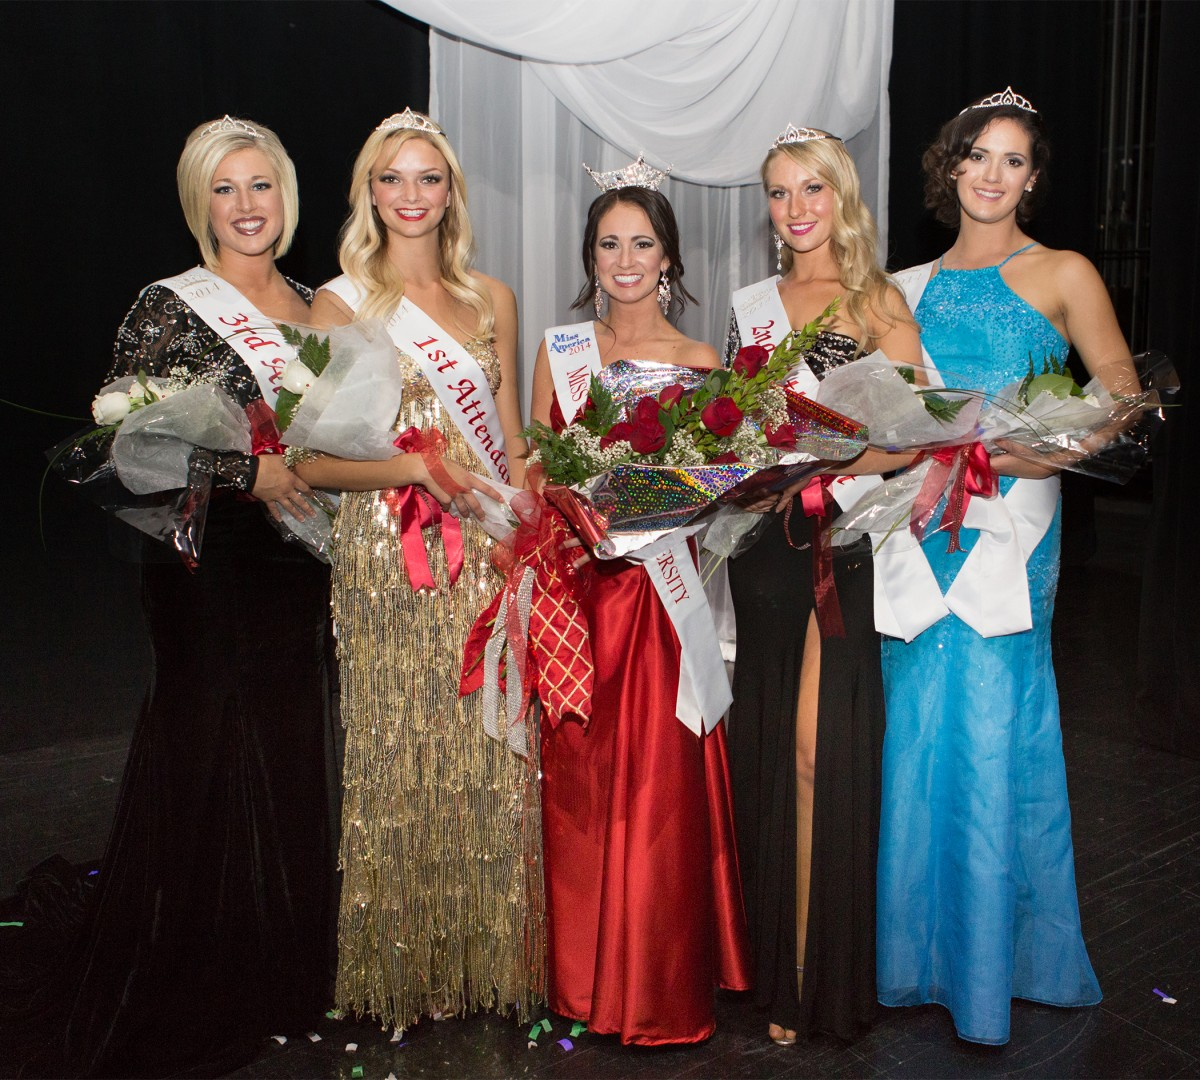 Miss Dixie State Homecoming Queen 2013 Shaelie Knutson (center), poses with her court at the conclusion of DSU's Miss Dixie State Homecoming Queen Pageant, St. George, UT, Oct. 16, 2013   Photo courtesy of DSU